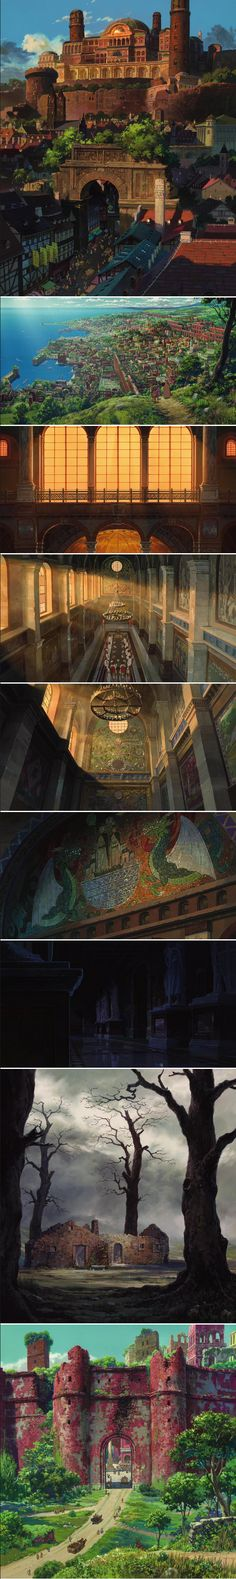 Tales From Eathsea. Directed by Gorō Miyazaki and produced by Studio Ghibli. http://anime-backgrounds.tumblr.com/